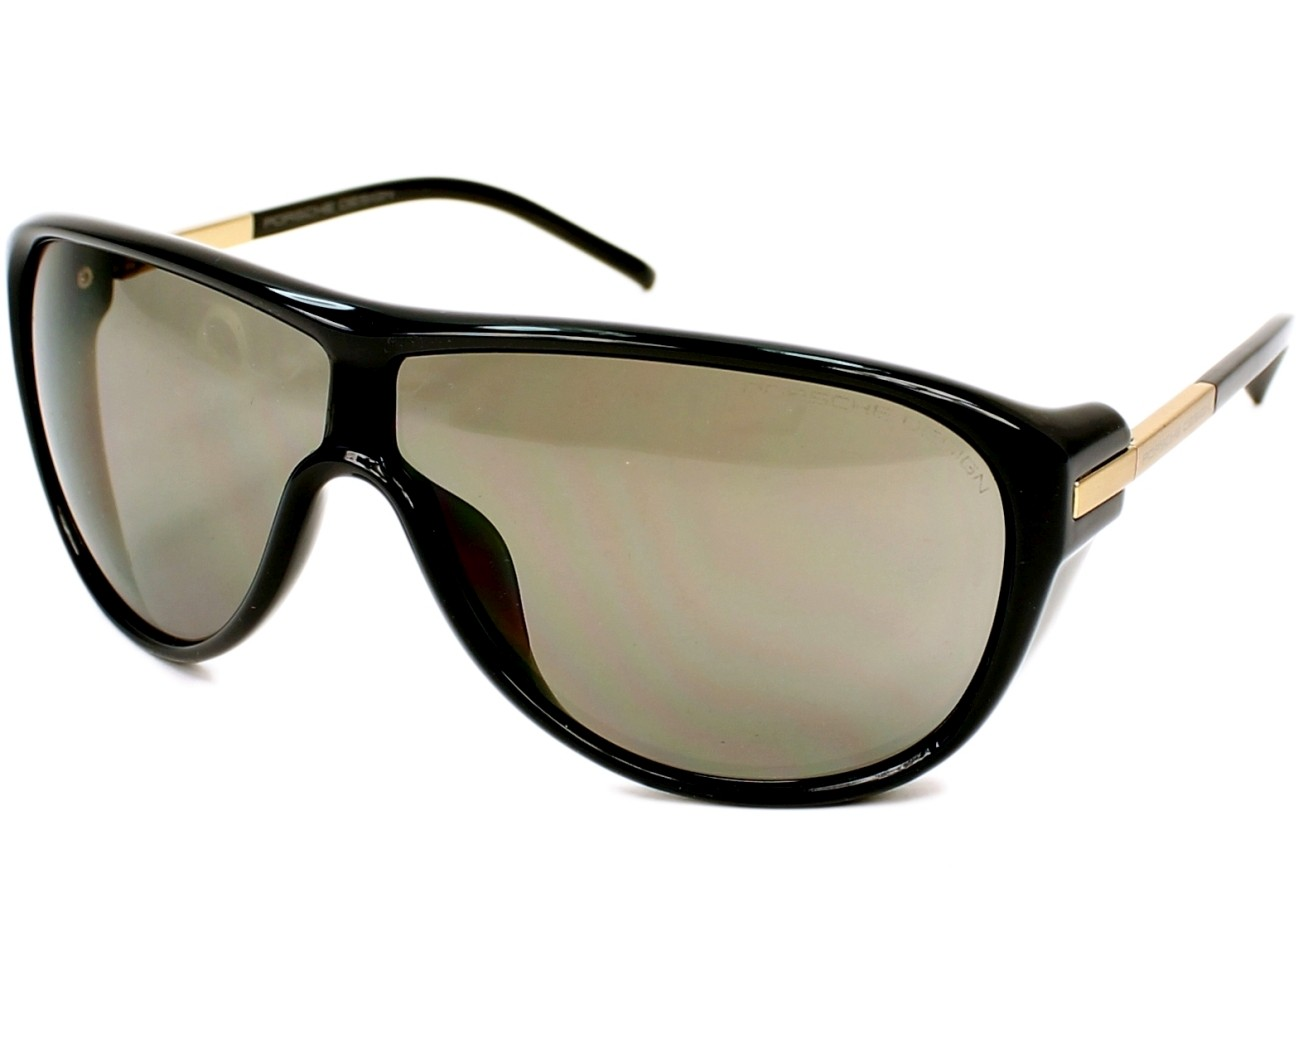 1184e448198 Porsche Design - Buy Porsche Design sunglasses online at low prices